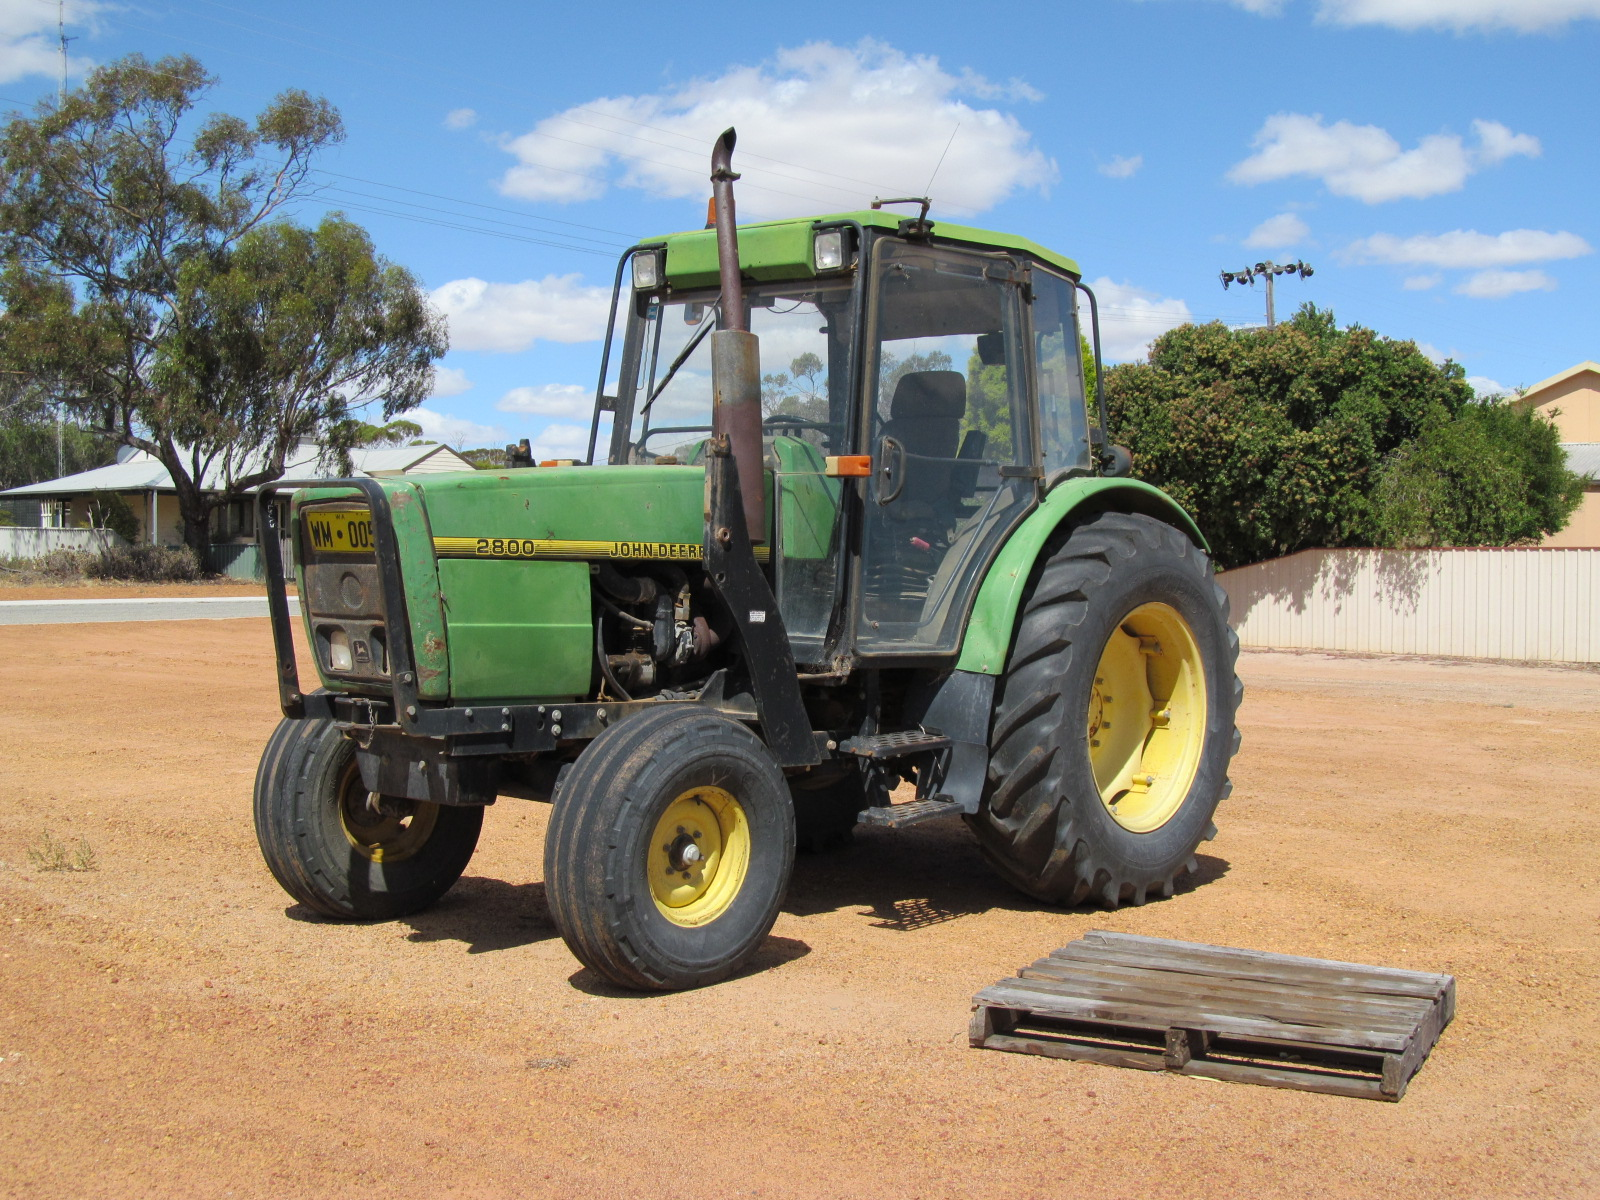 File:John Deere 2800 tractor at Wyalkatchem.jpg ...